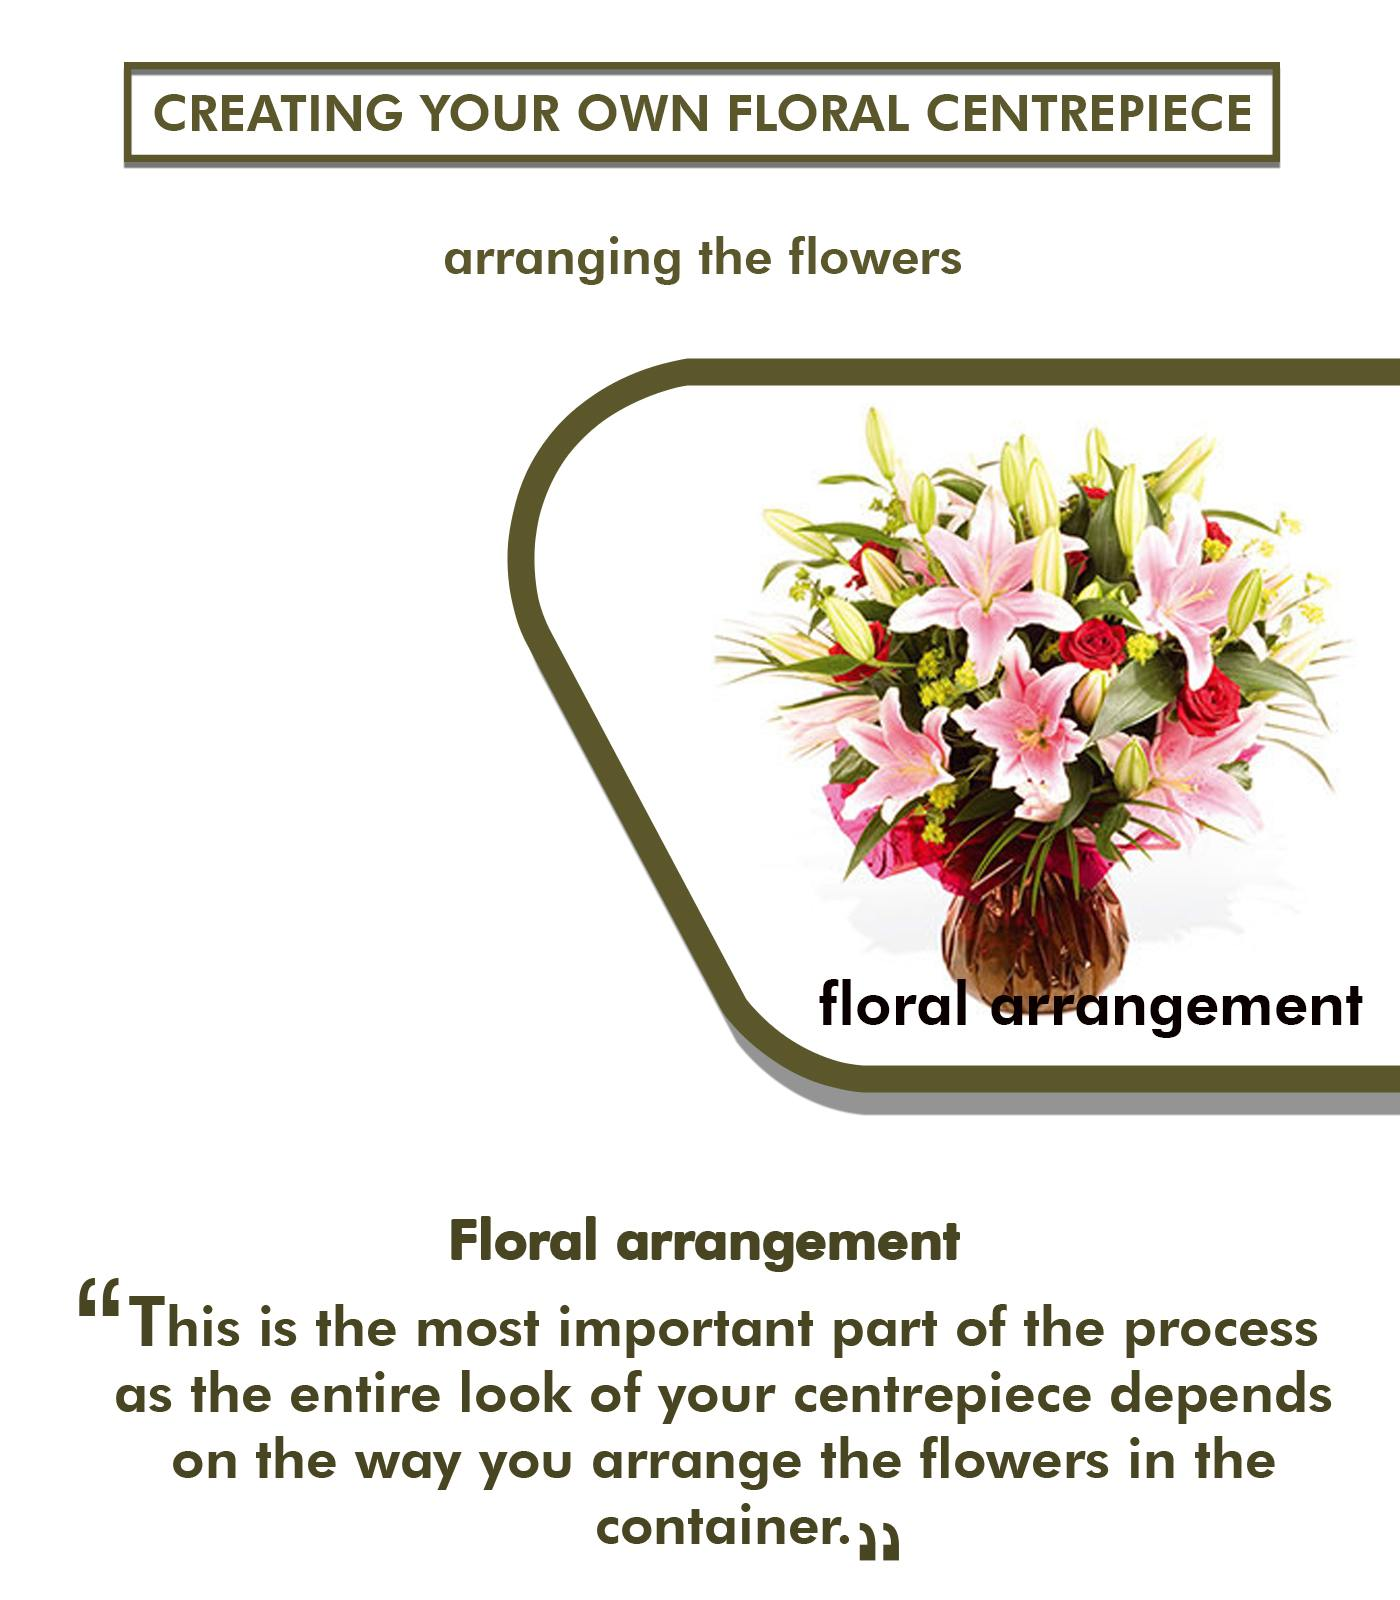 A Guidelines For Creating Your Own Floral Centerpiece